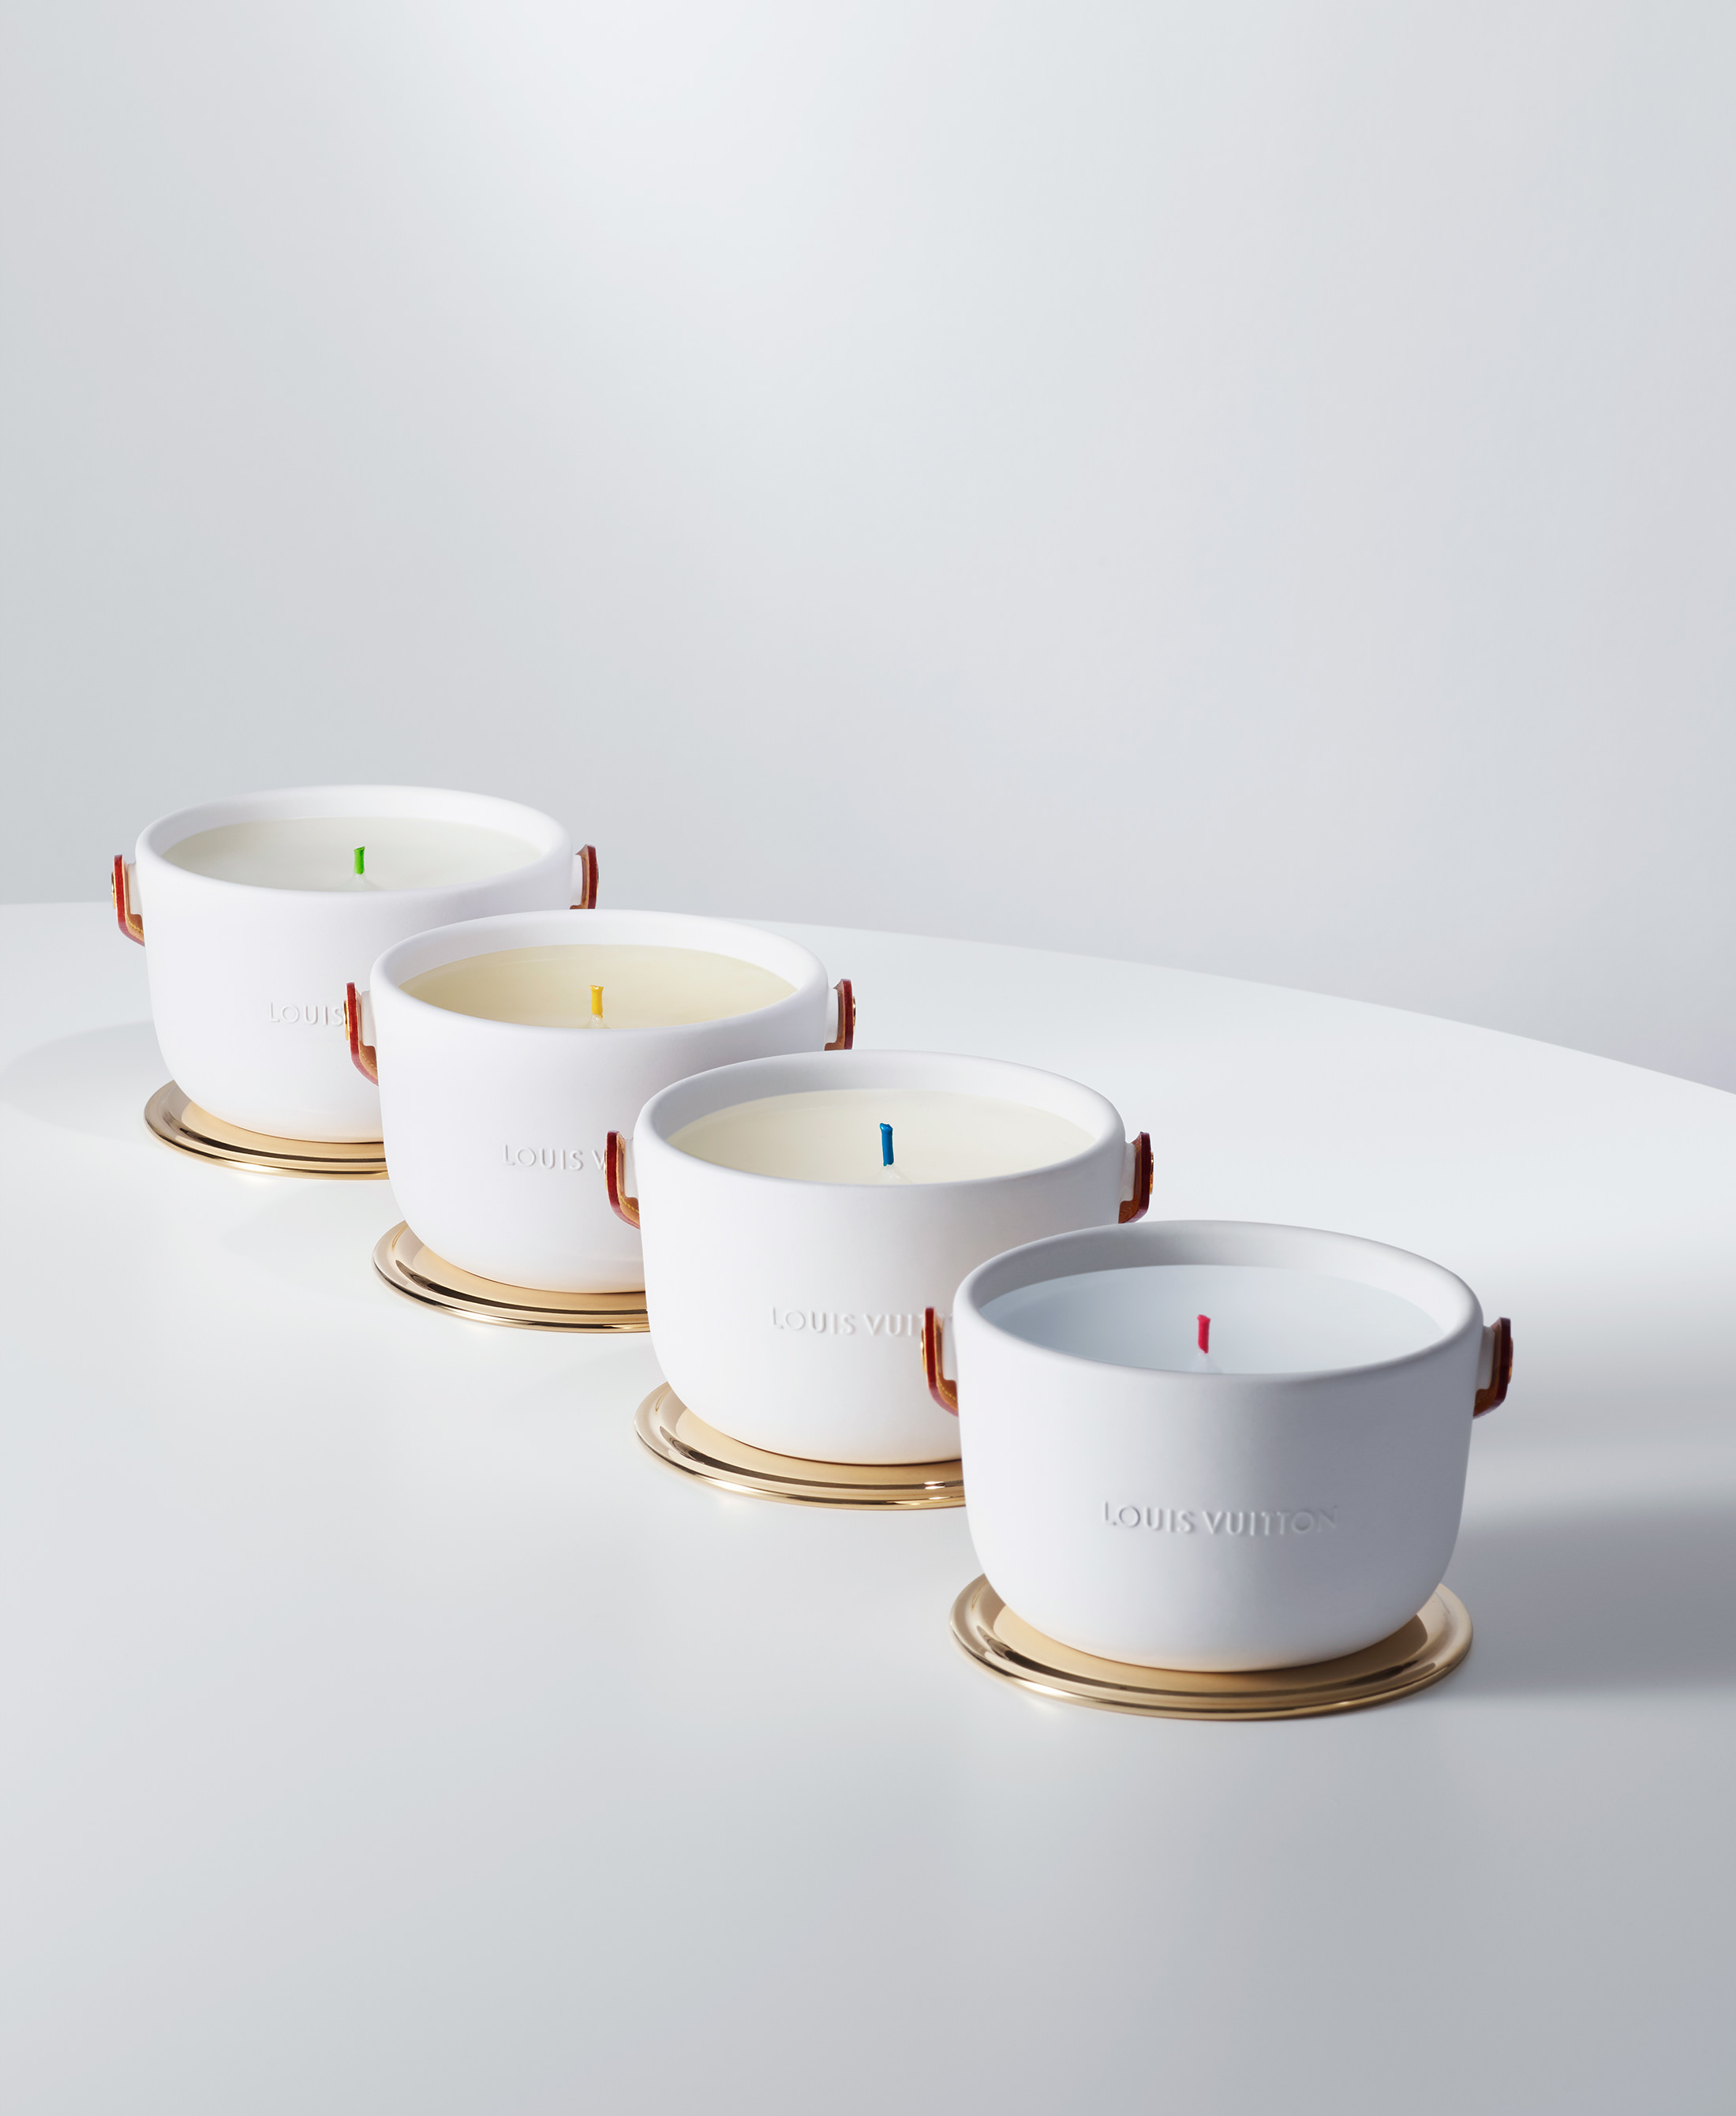 Louis Vuitton's Perfumed Candles